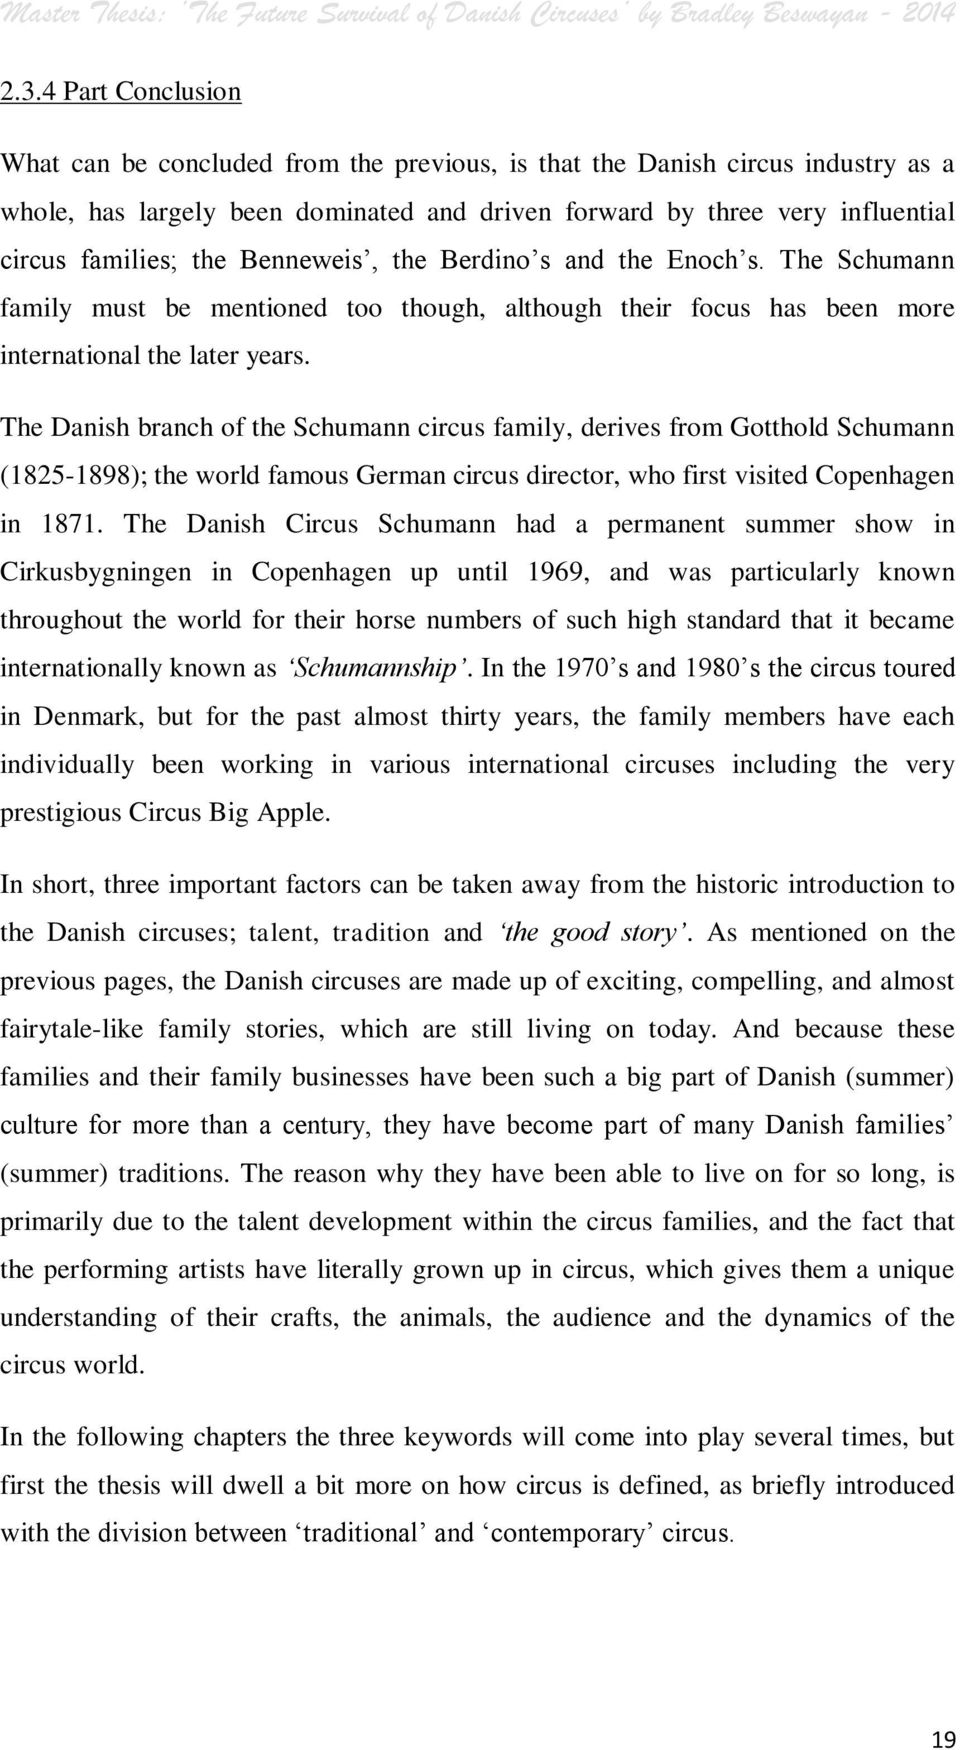 The Danish branch of the Schumann circus family, derives from Gotthold Schumann (1825-1898); the world famous German circus director, who first visited Copenhagen in 1871.